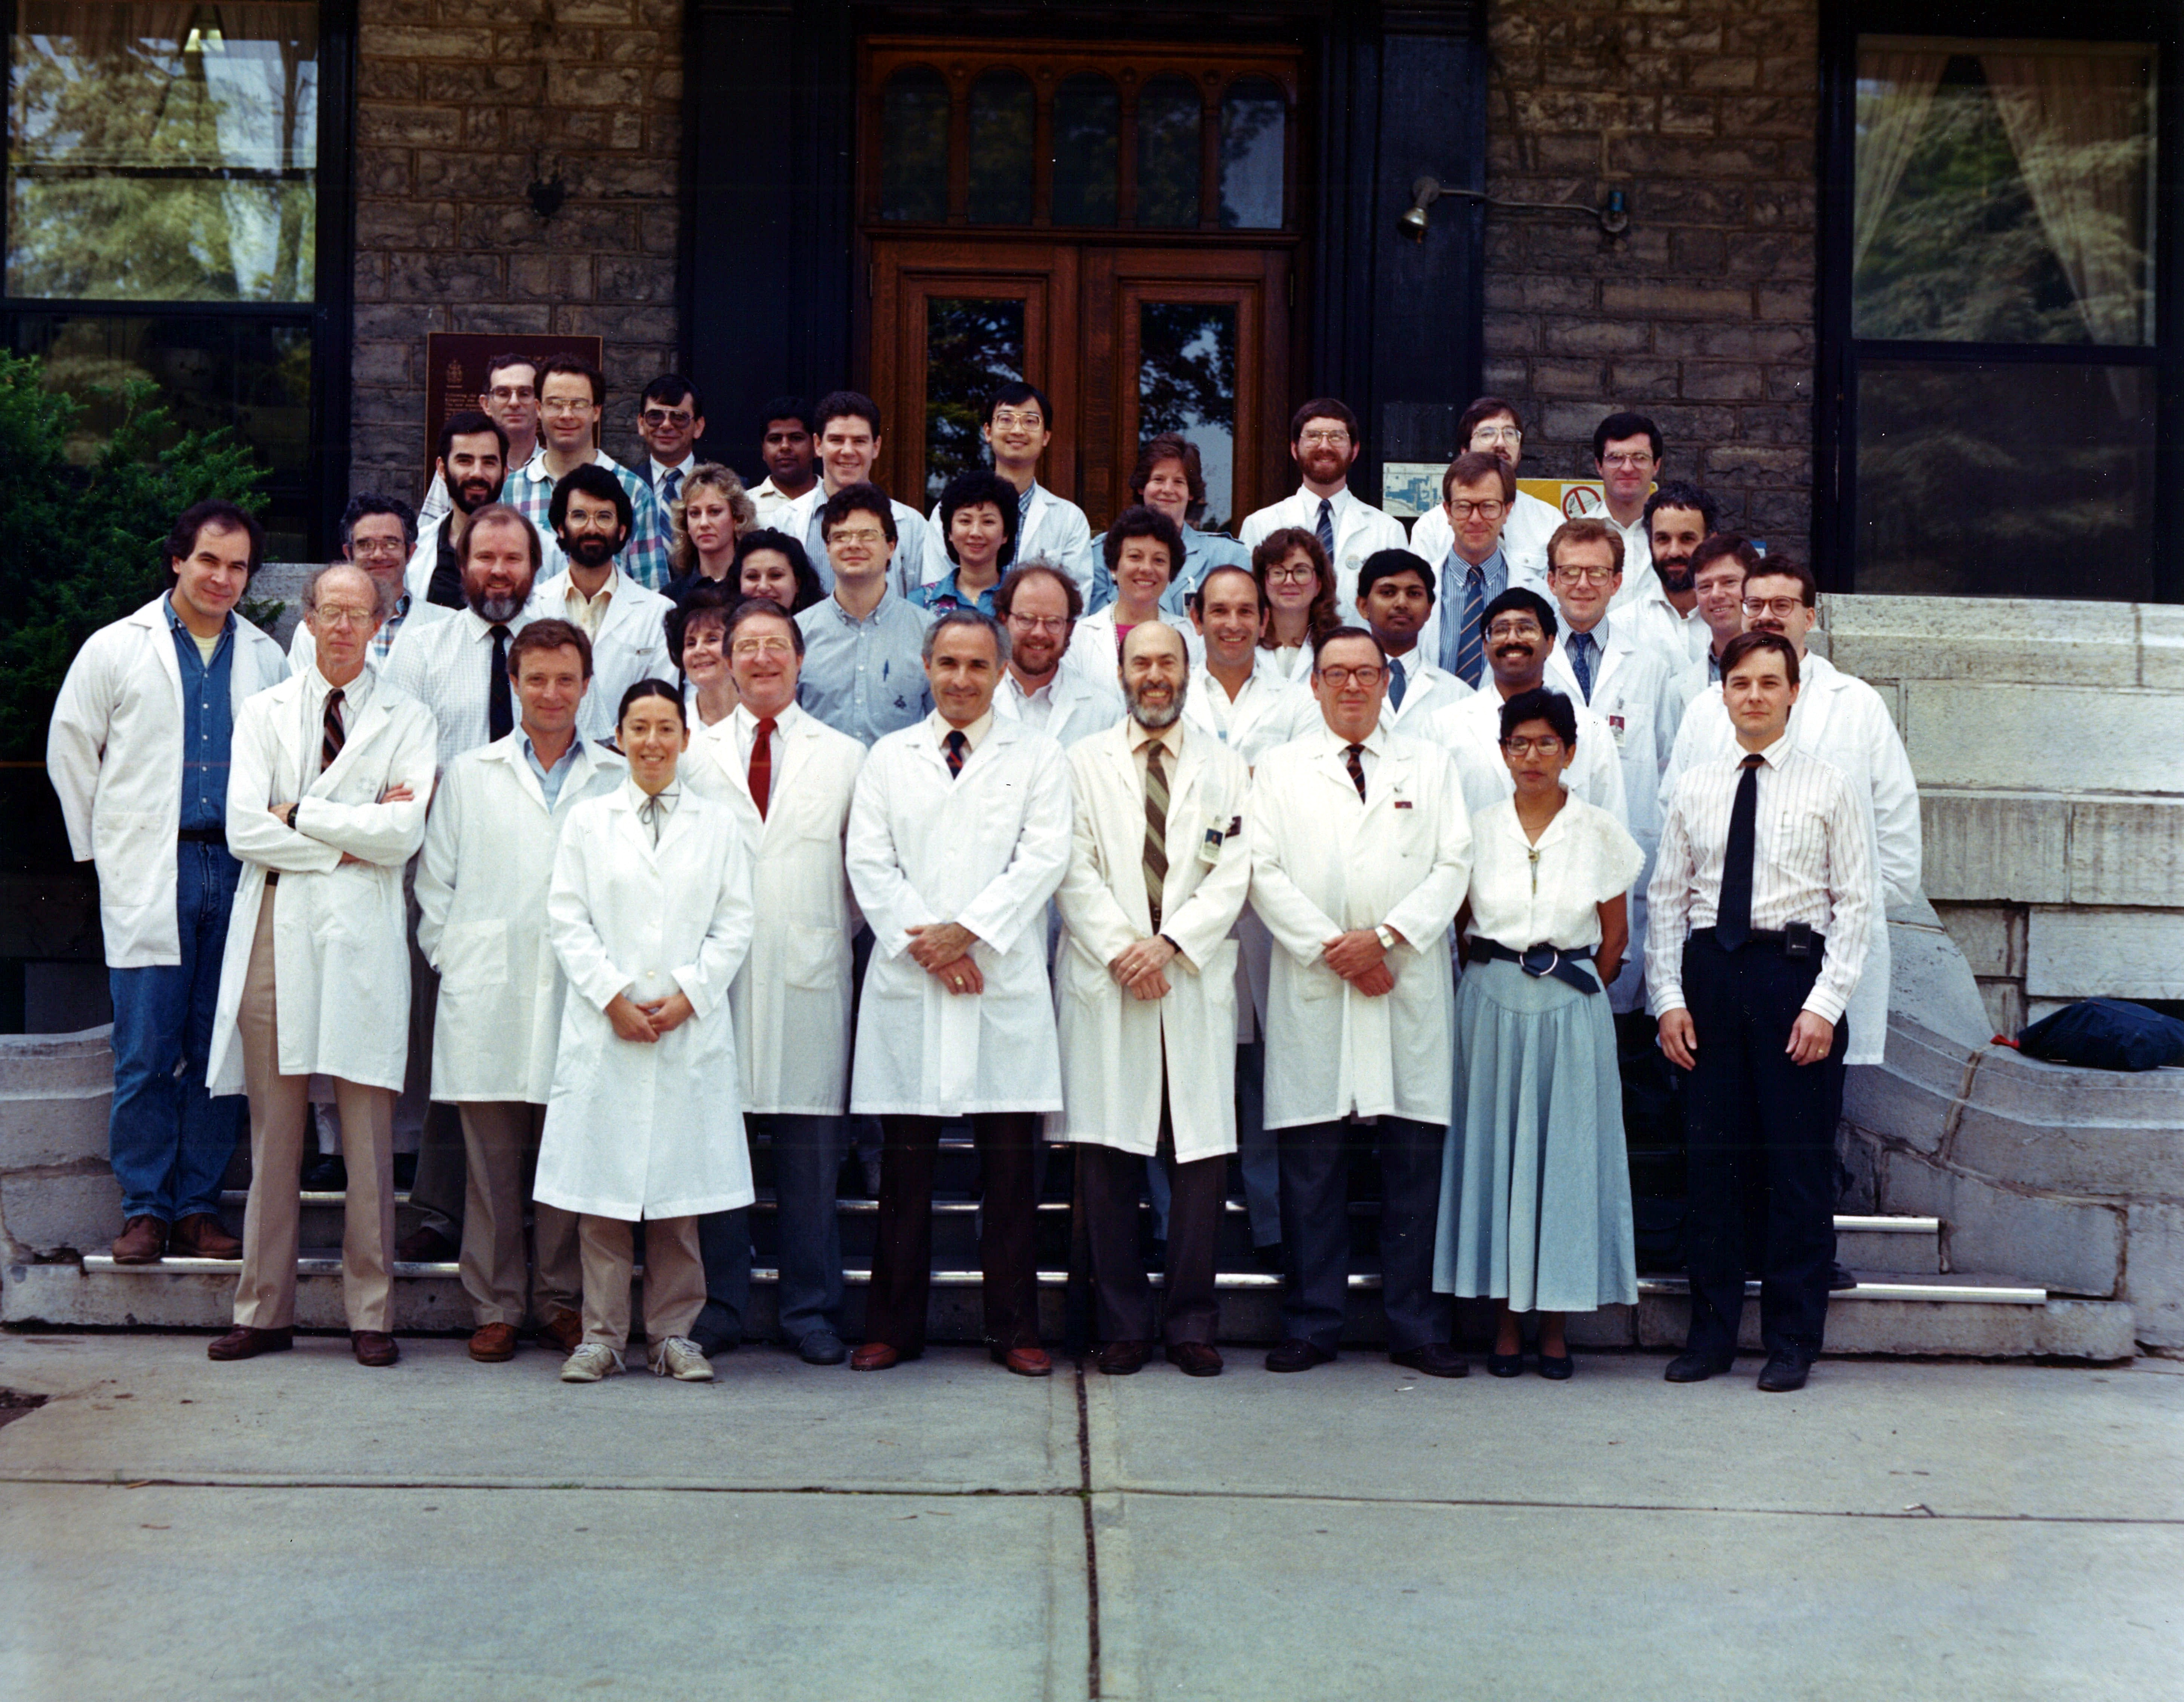 1990 Faculty Group Photo